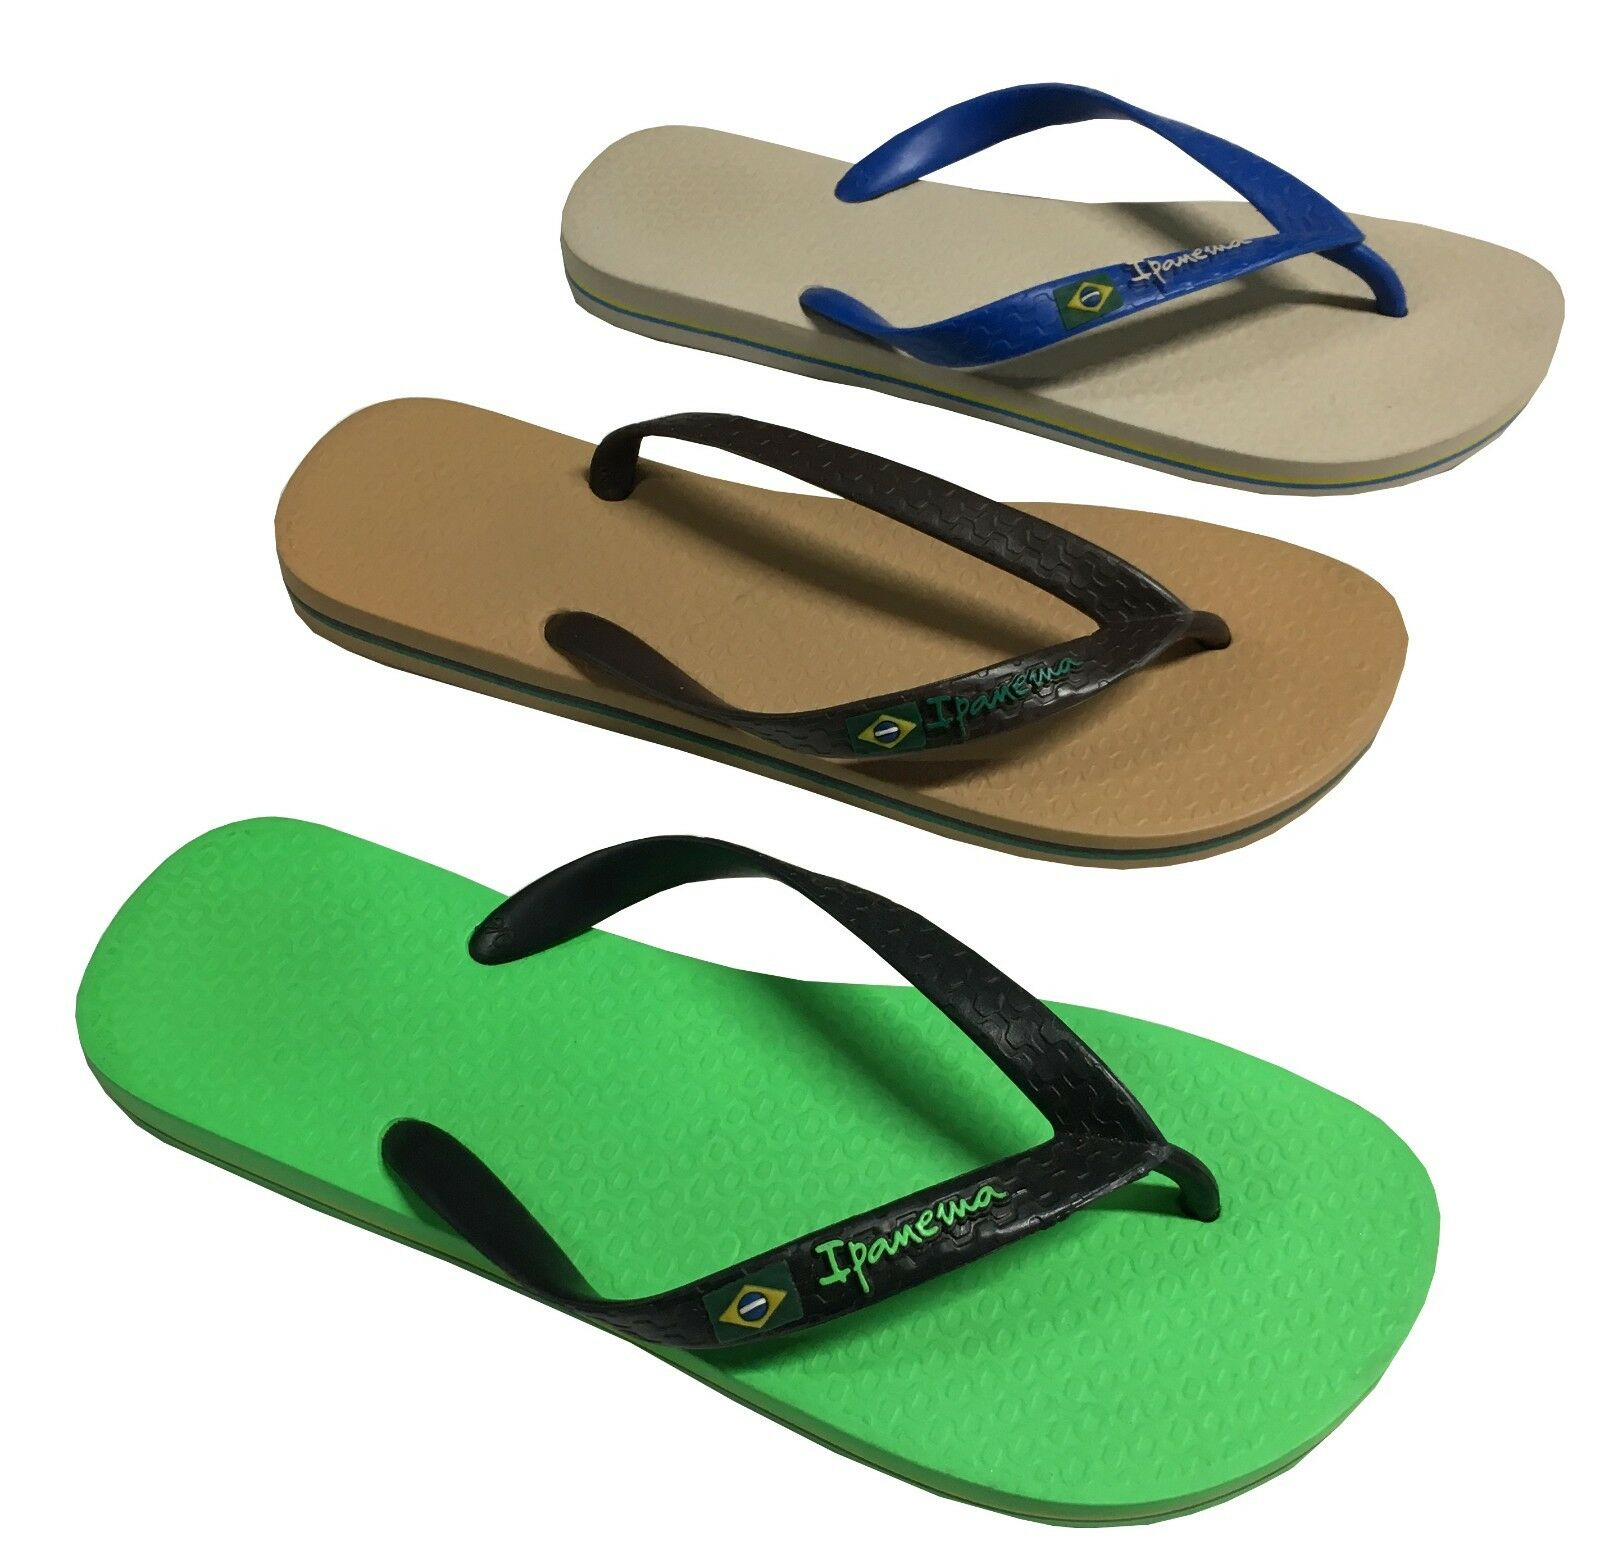 Details about Ipanema Men's Flip Flops Mod. Classical Brasil II ad Ff 80415 Made in Brazil